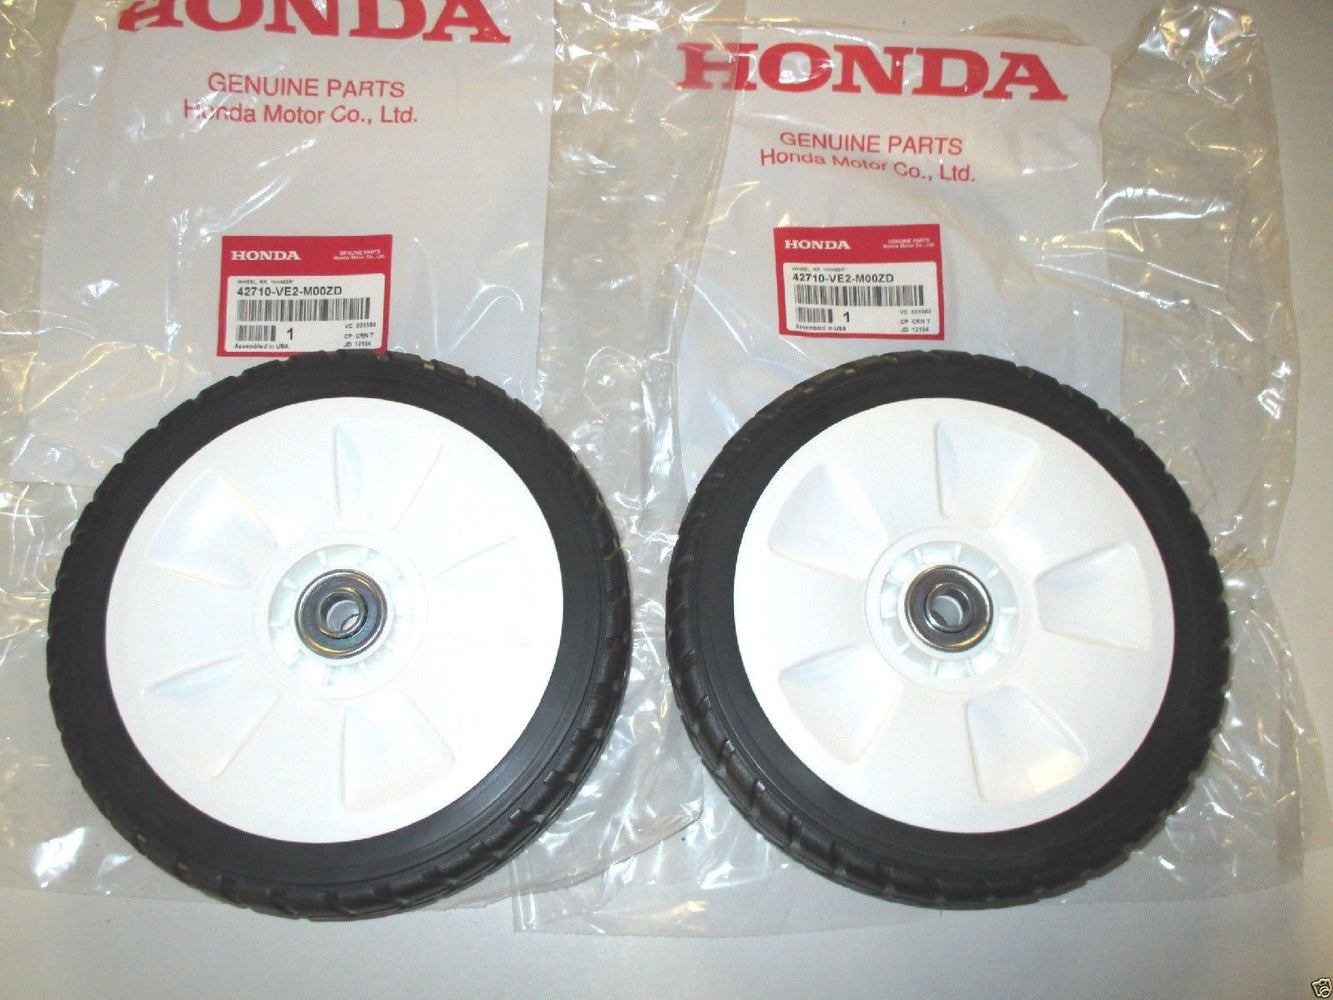 2 Pack Genuine Honda 42710-VE2-M02ZD Rear Wheel Replaces 42710-VE2-M01ZD OEM